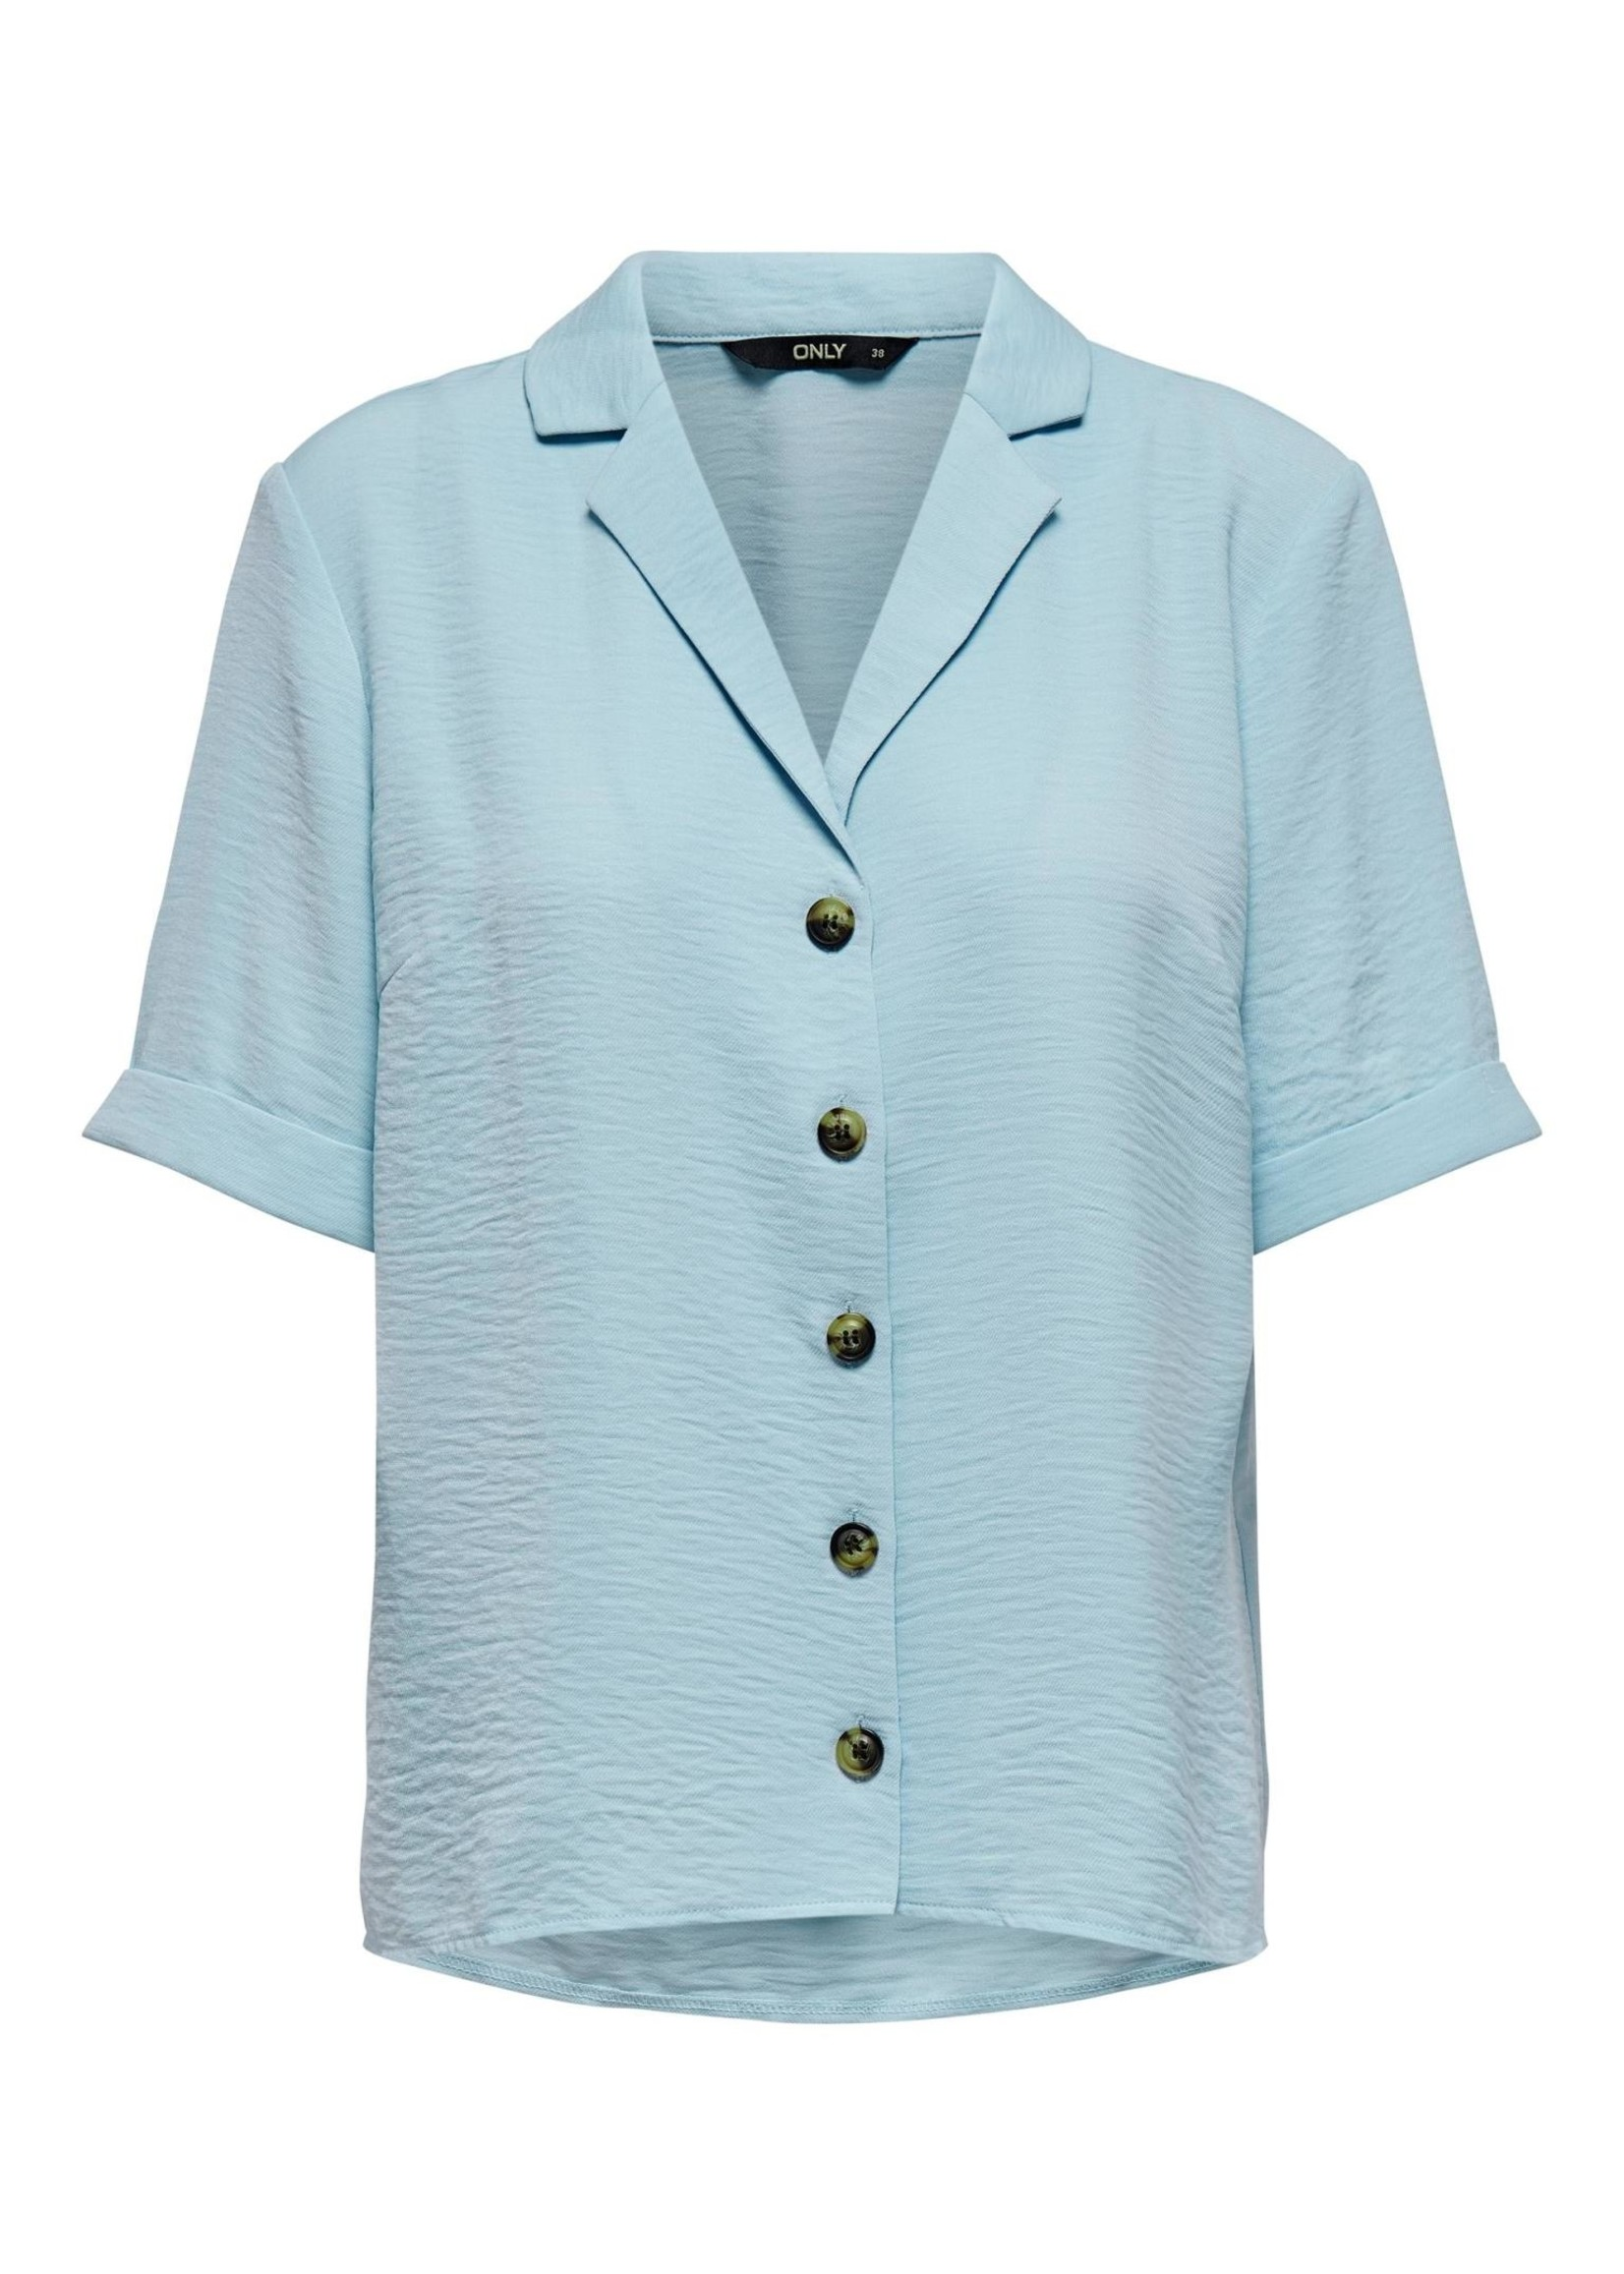 ONLY SKY S/S SHIRT SOLID NOOS WVN Skyway